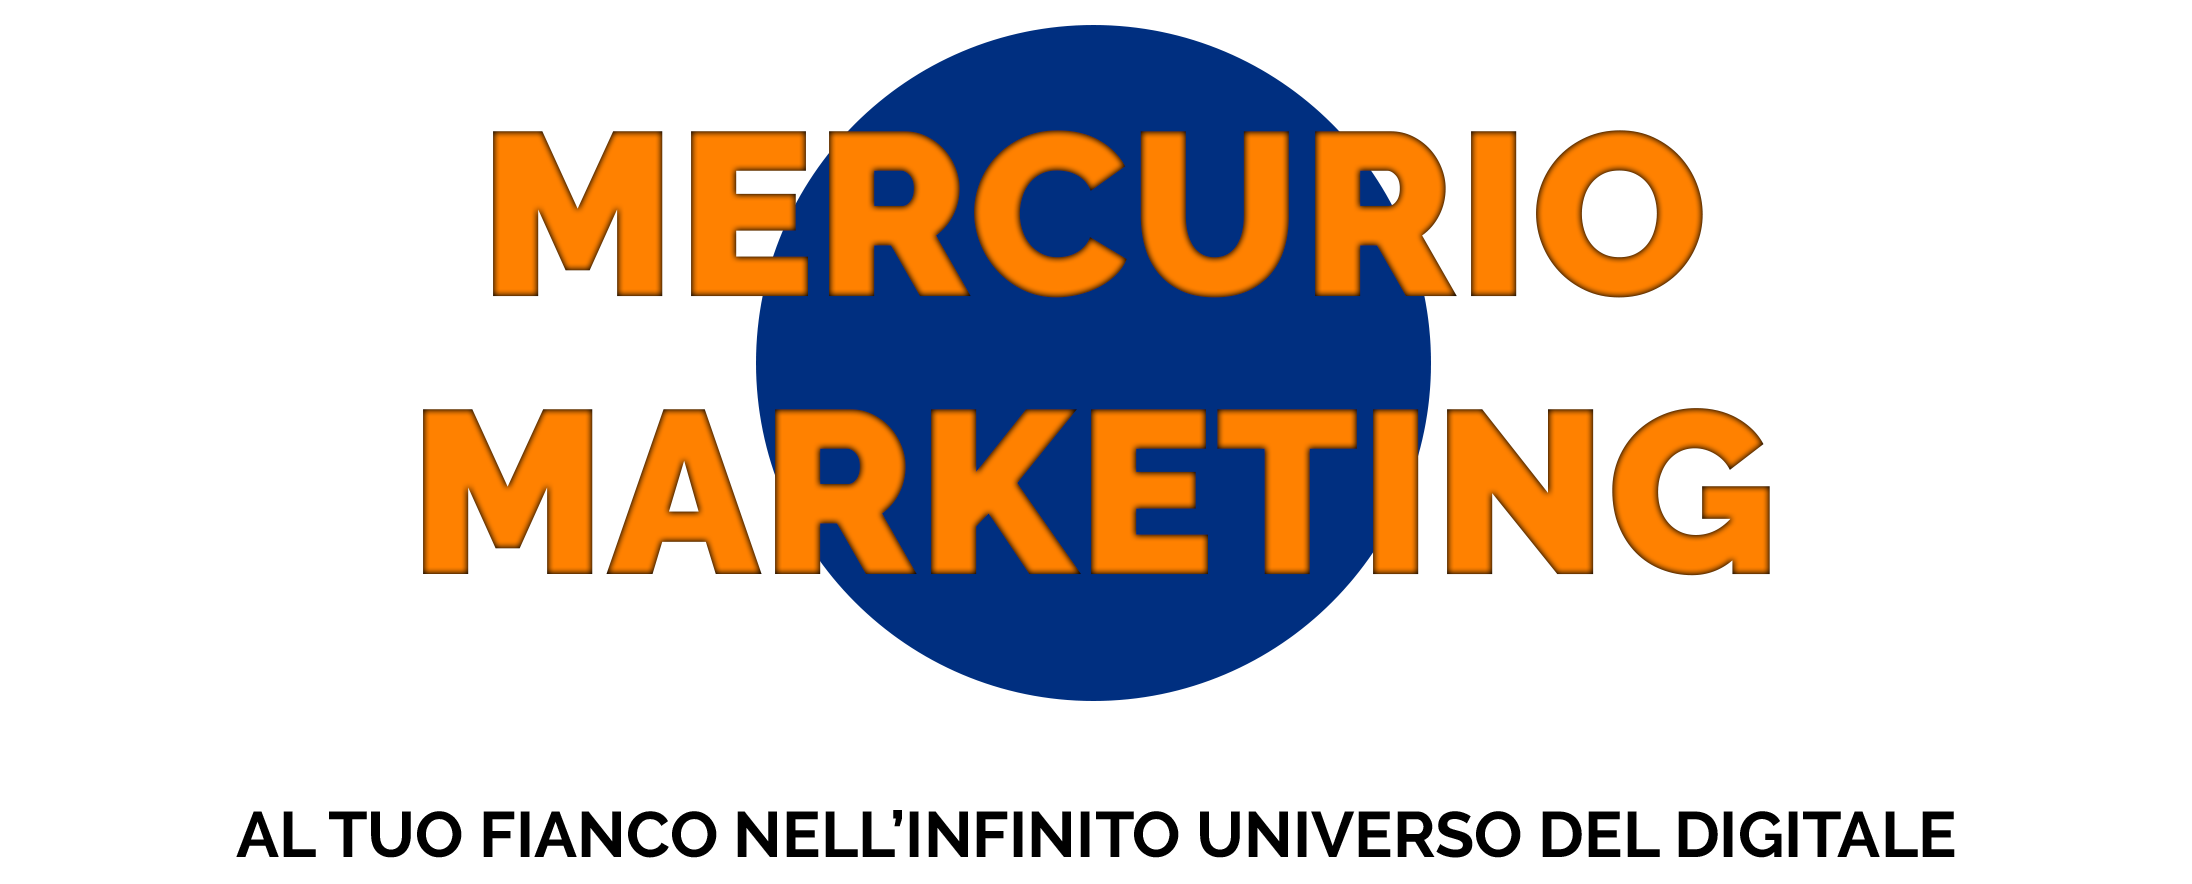 Mercurio Marketing - Marketing Digitale